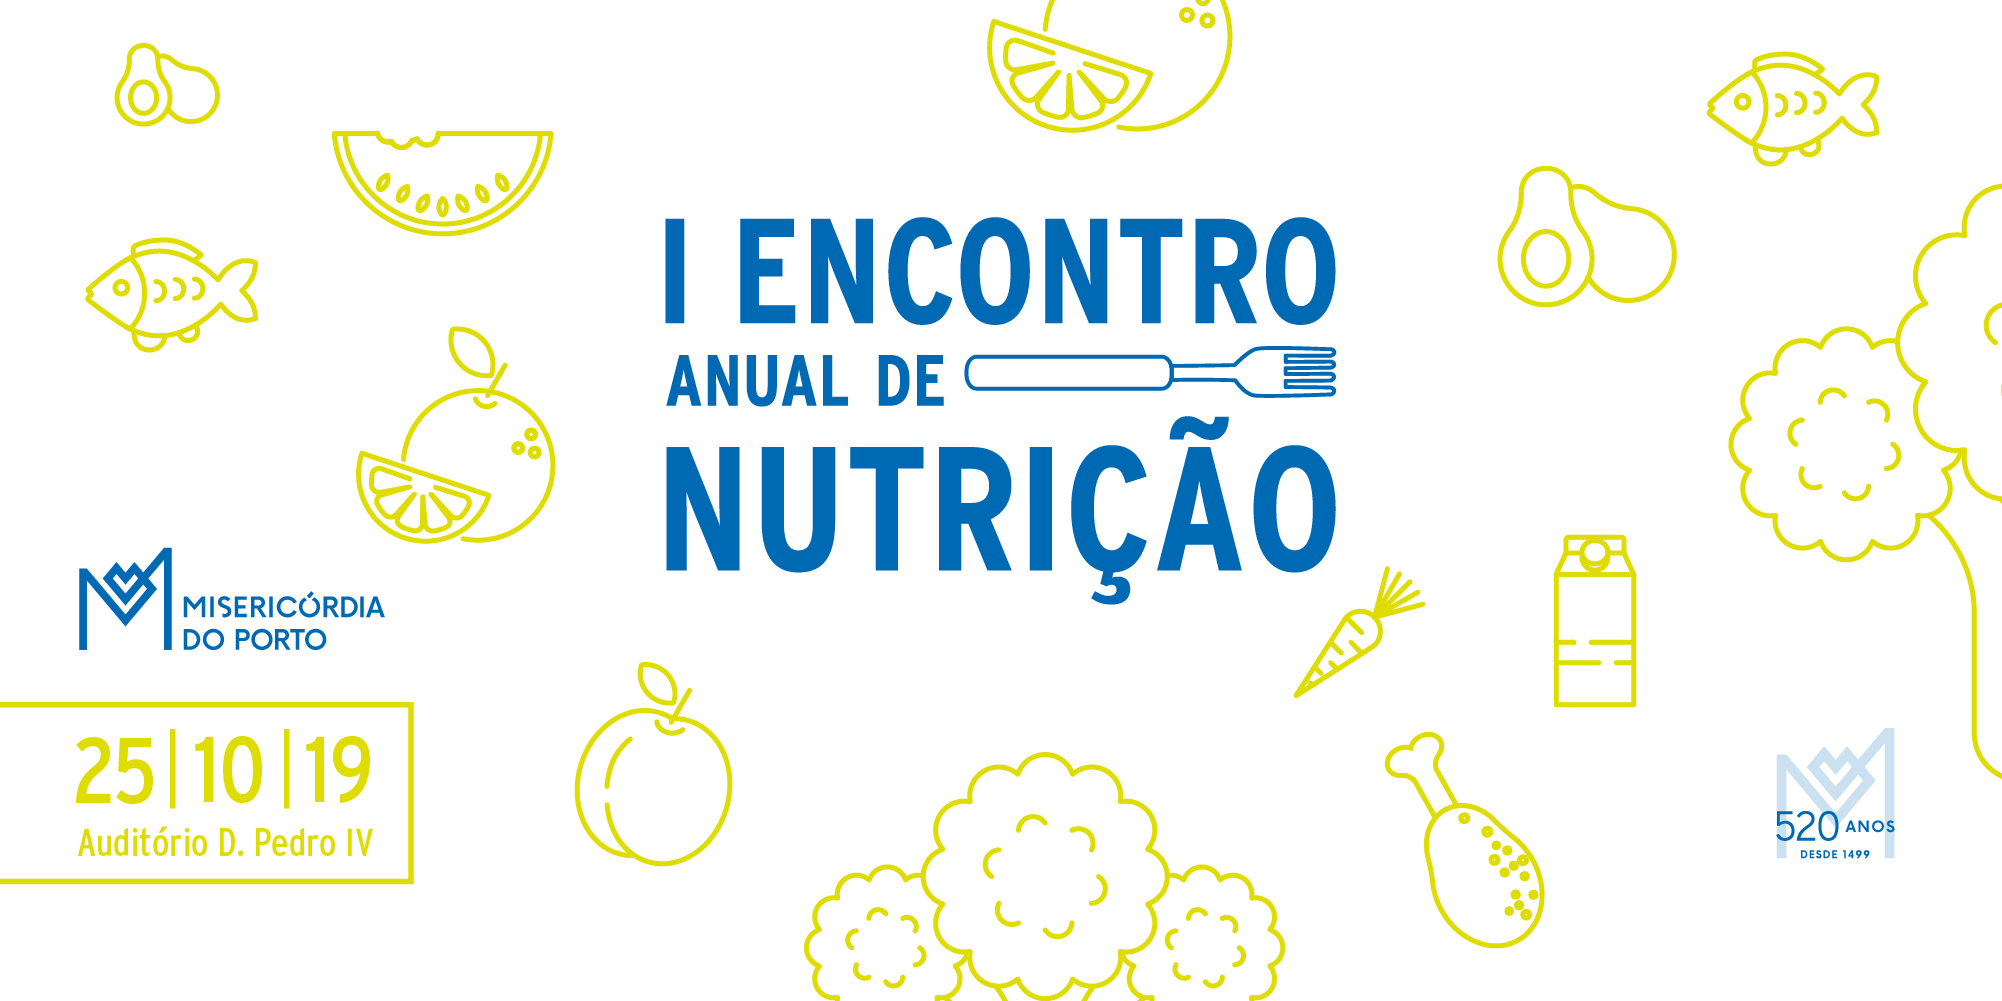 https://www.scmp.pt/assets/misc/img/noticias/2019/2019%2010%2025/HP_I_encontro_nutricao__banner%20site.png